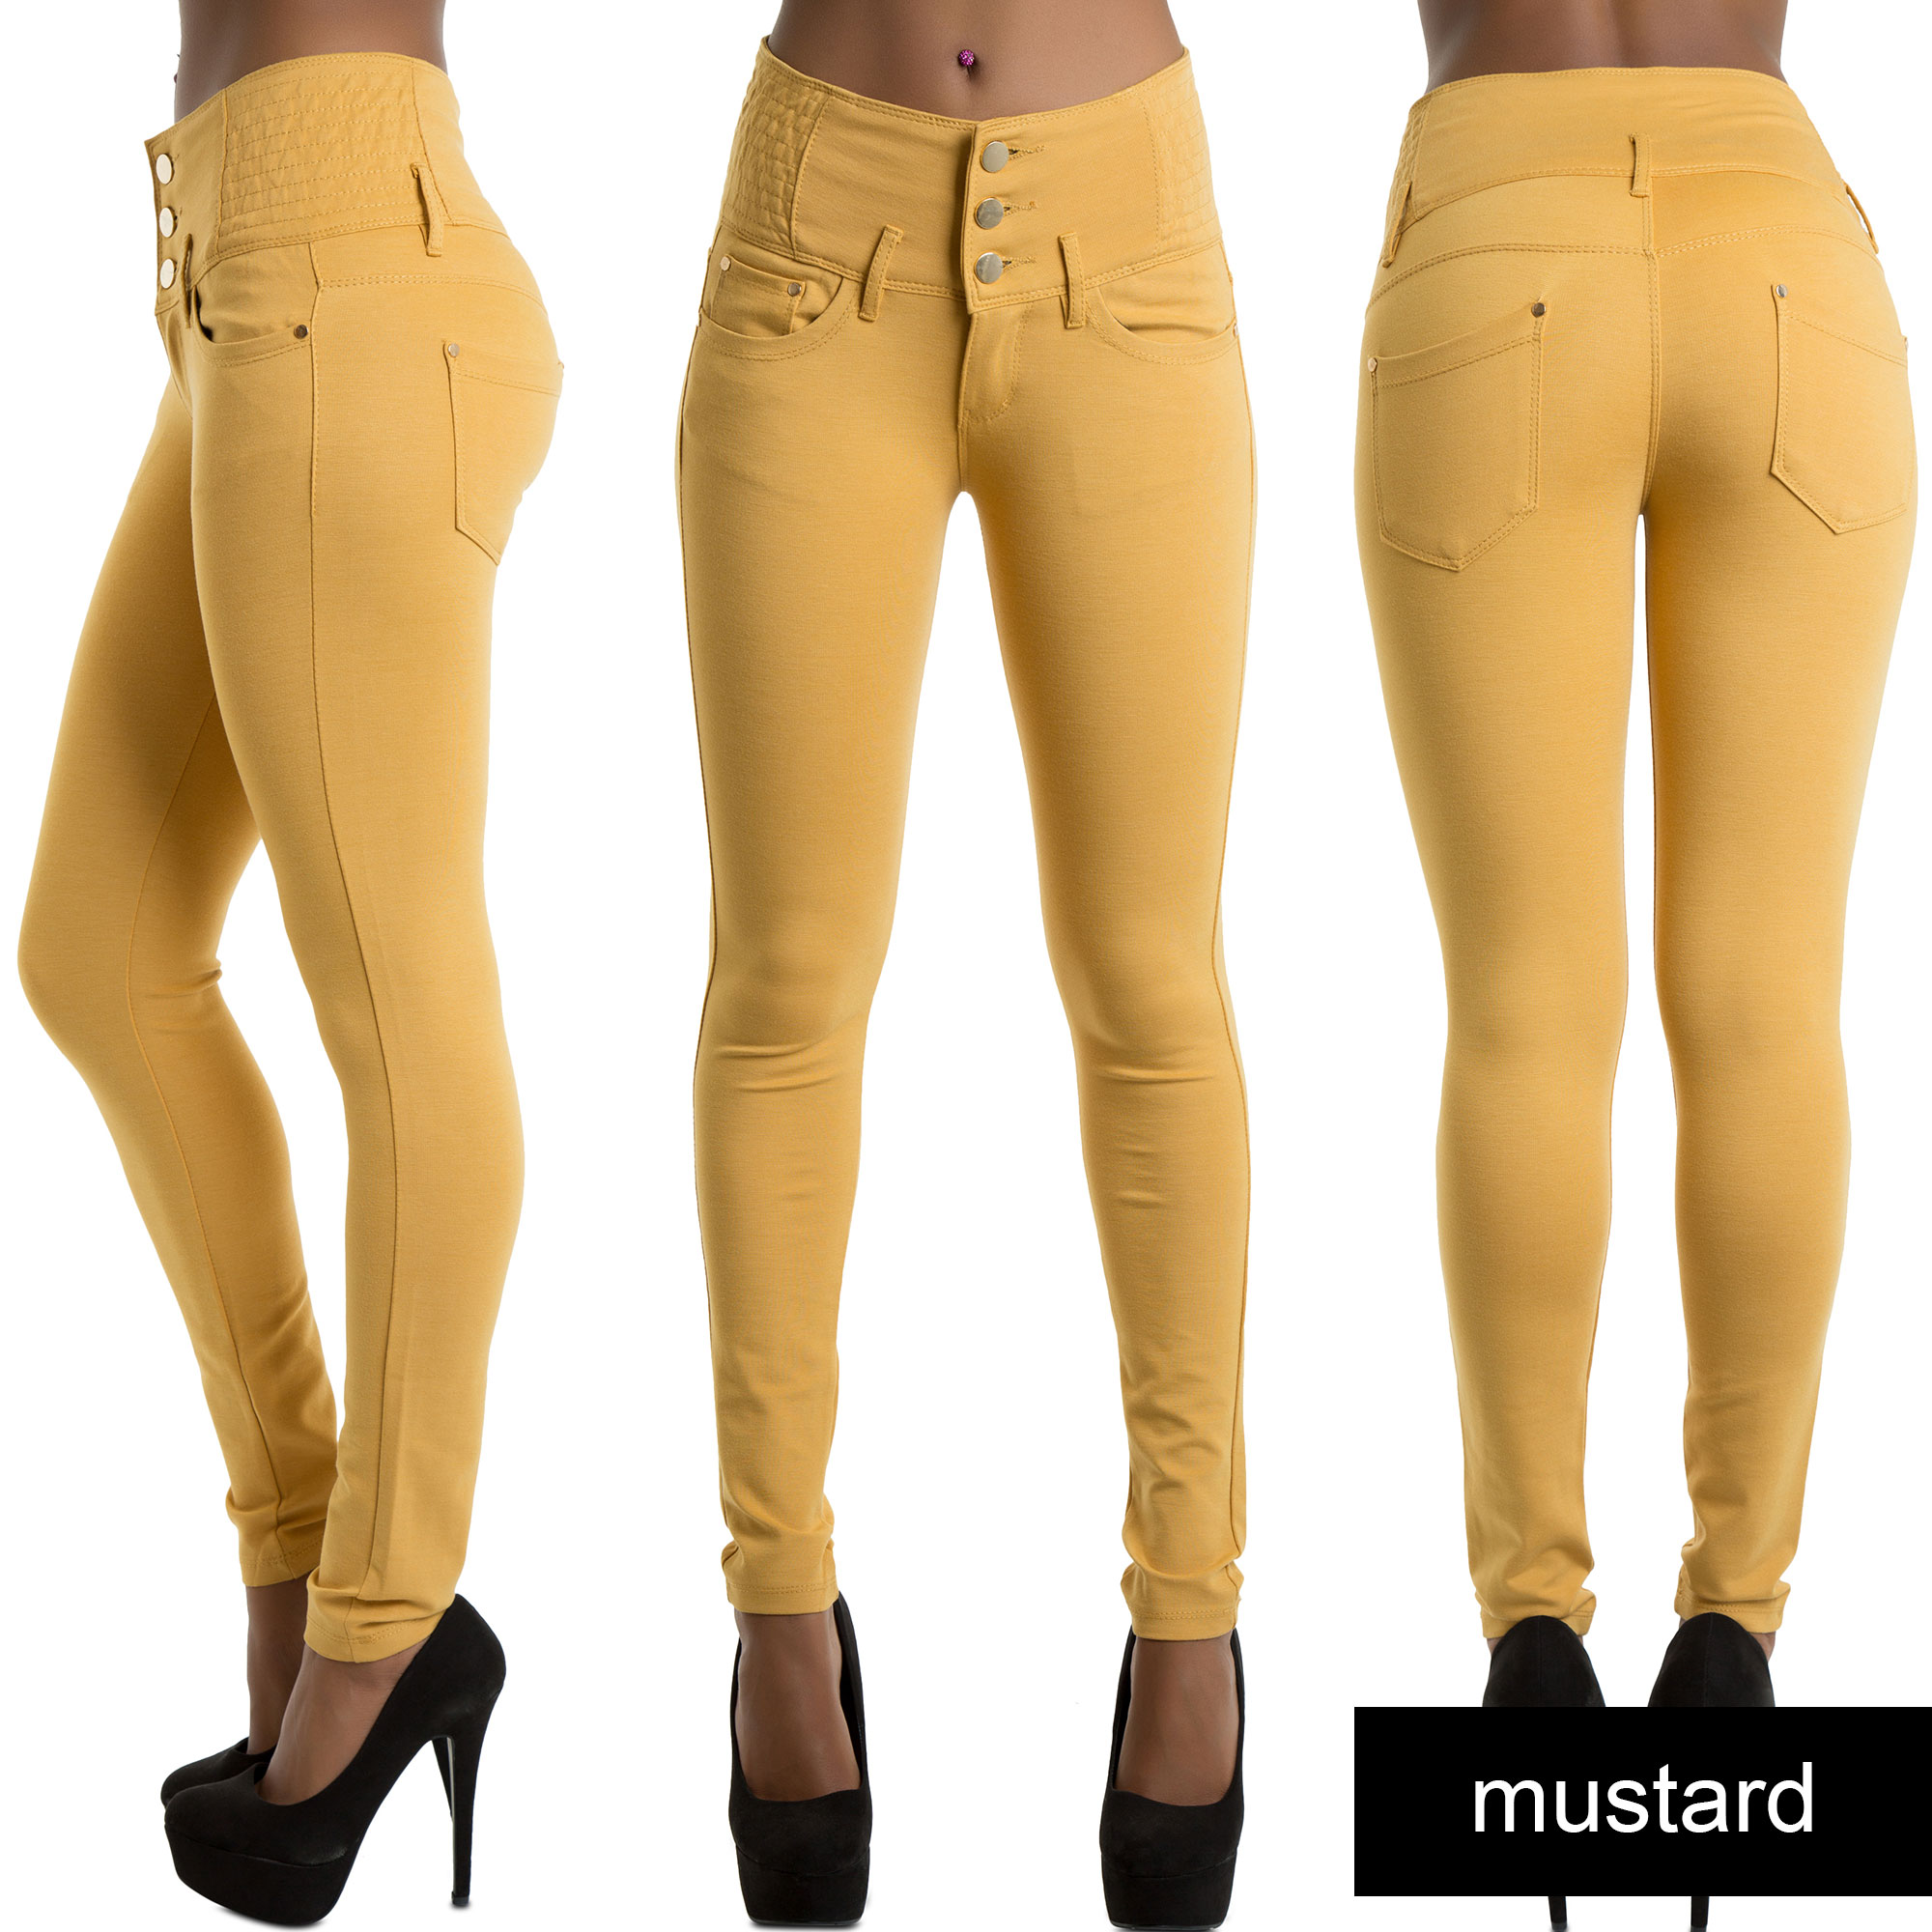 Shop. If you are normally a size 6 and are standing in front of a rack of jeans with sizes listed in inches, remember your waist measurement, or know that a standard size 6 is about a inch waist. If the sizes are listed in pants sizes, just take your waist measurement and .